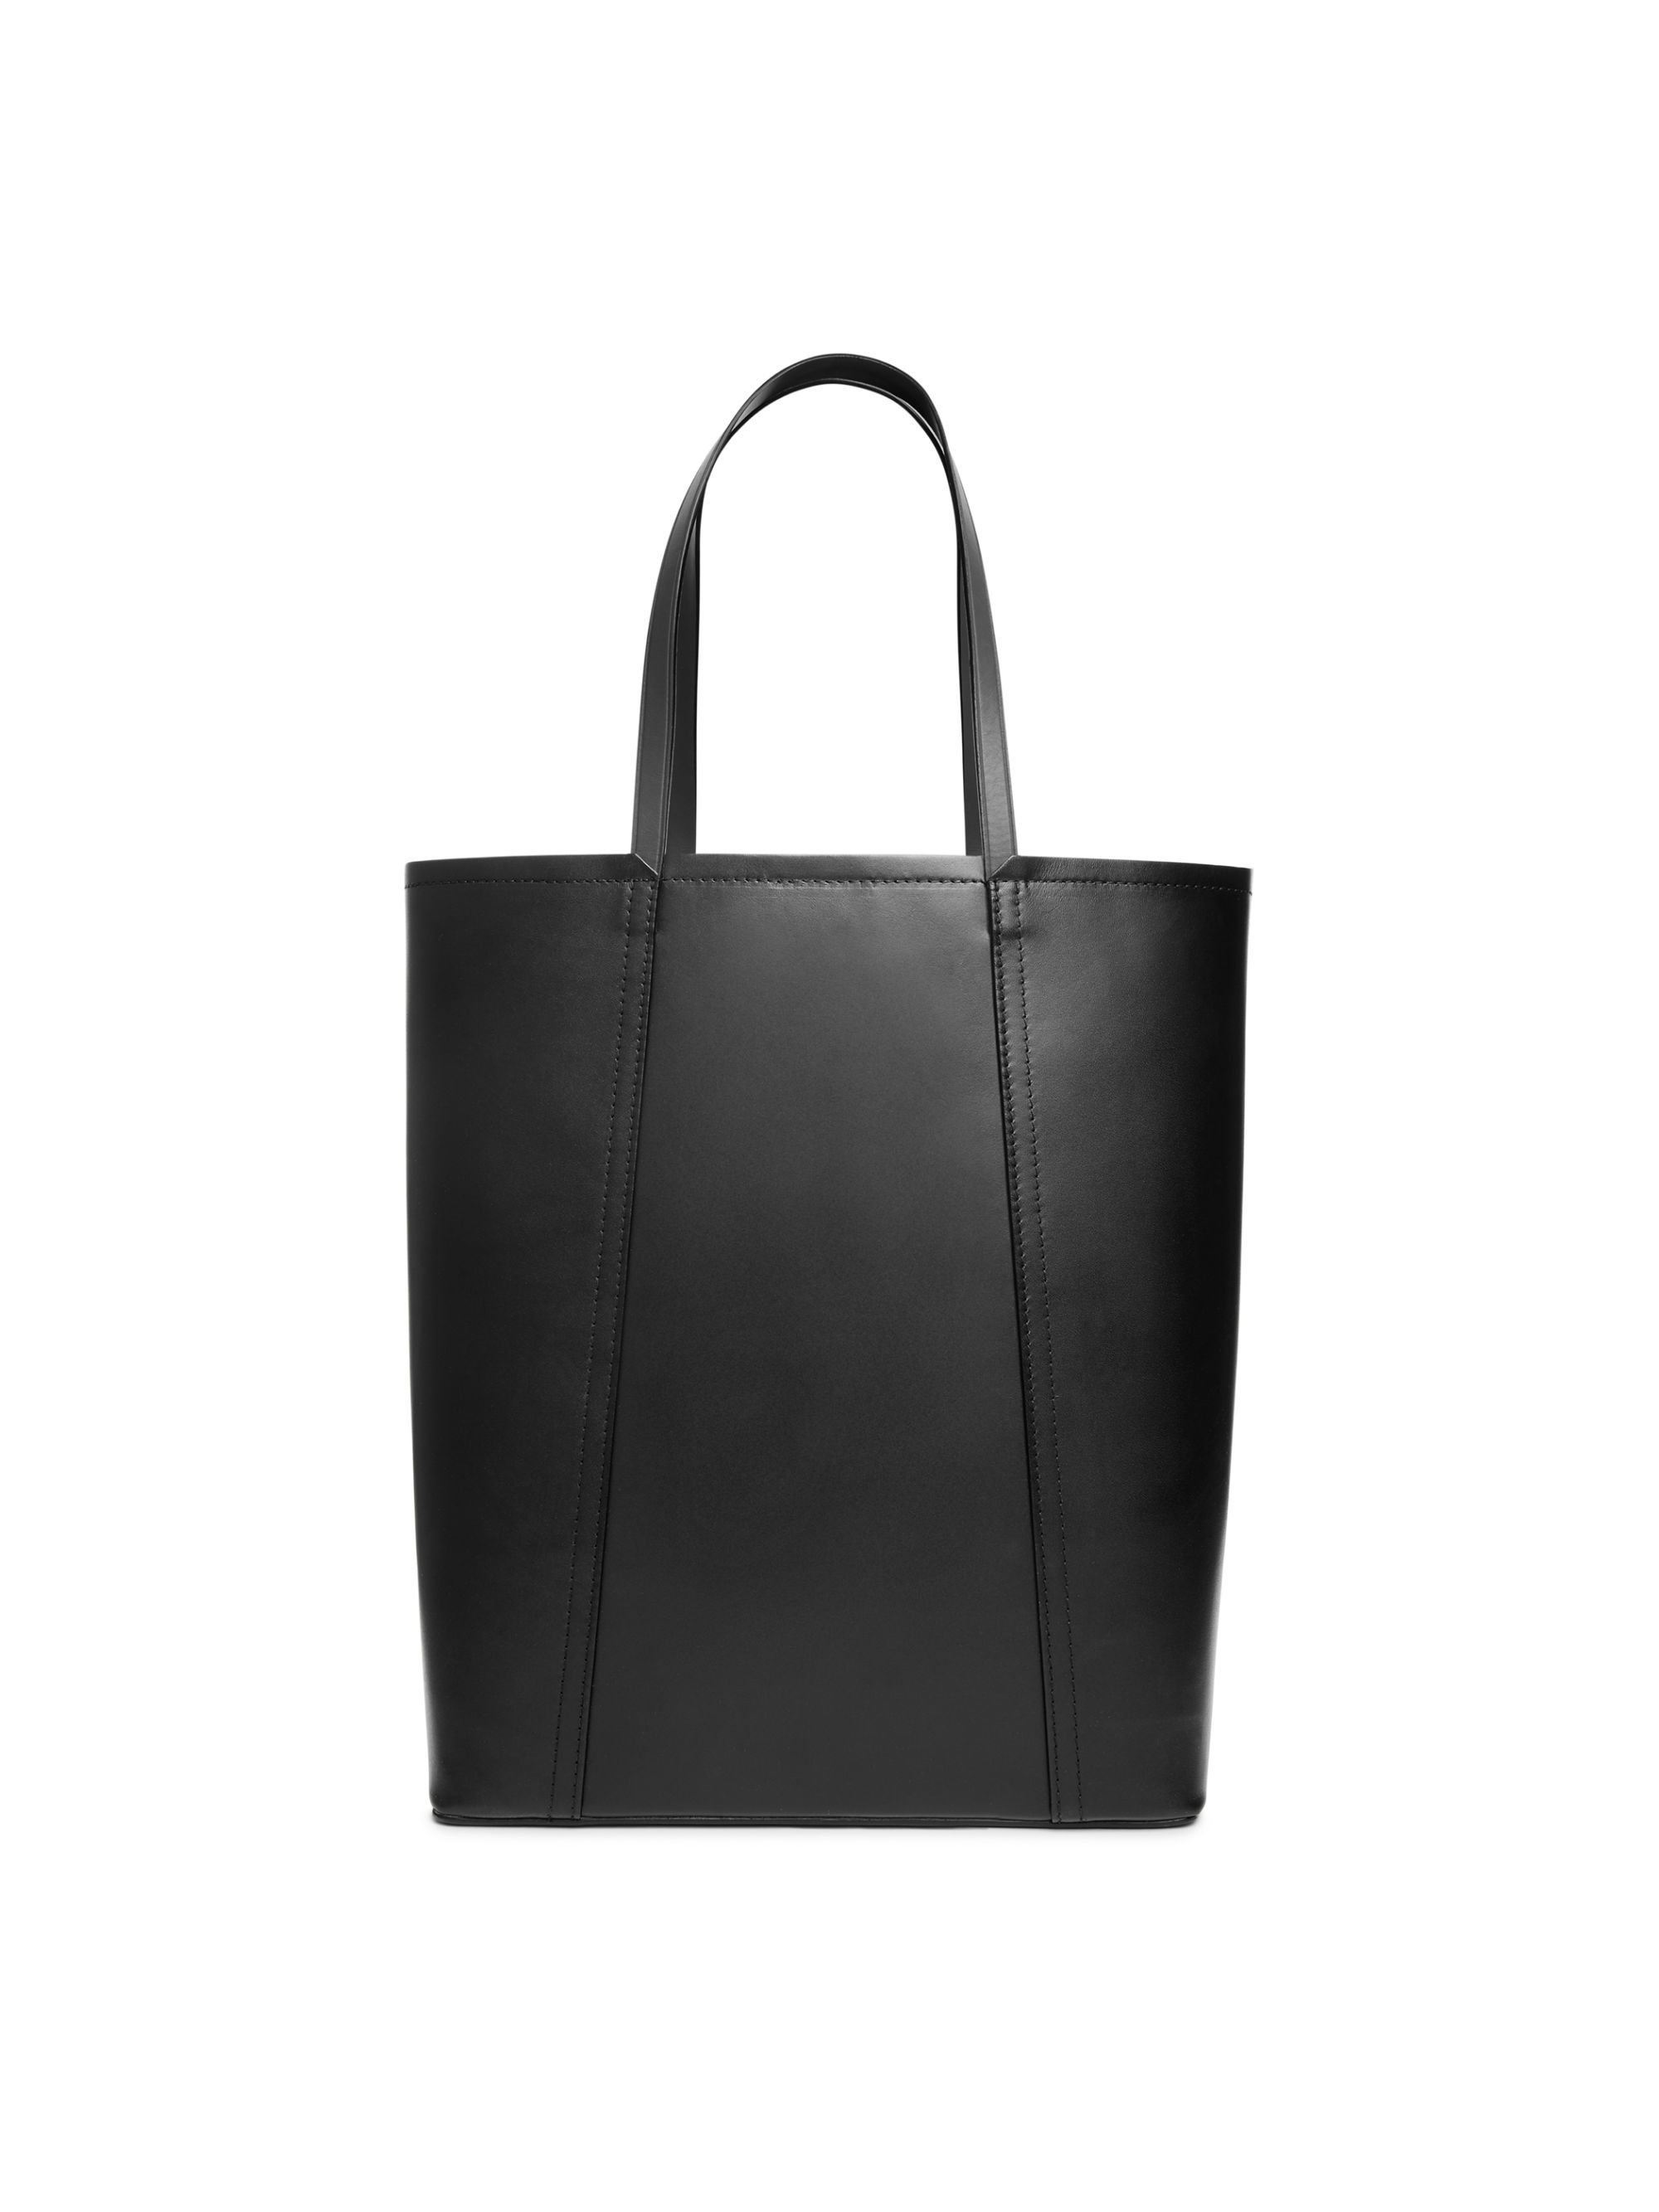 4a929fb8f6e7 Leather Bucket Tote - Black - Bags & accessories - ARKET | Väskor ...